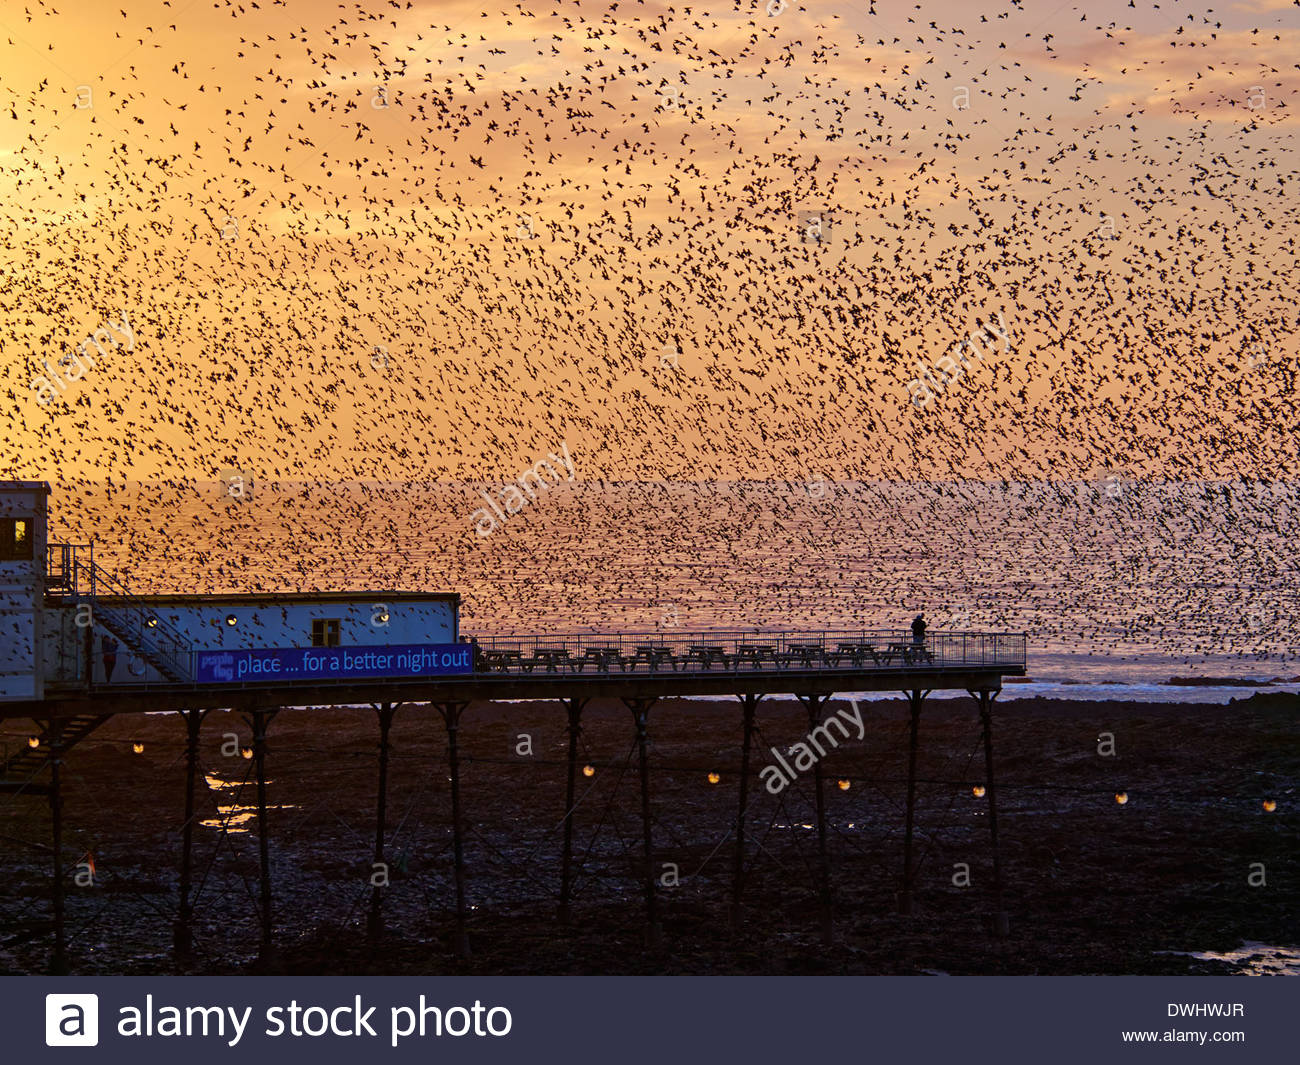 A murmuration of 10s of thousands of starlings roosting over aberystwyth royal pier in march 2014 - Stock Image